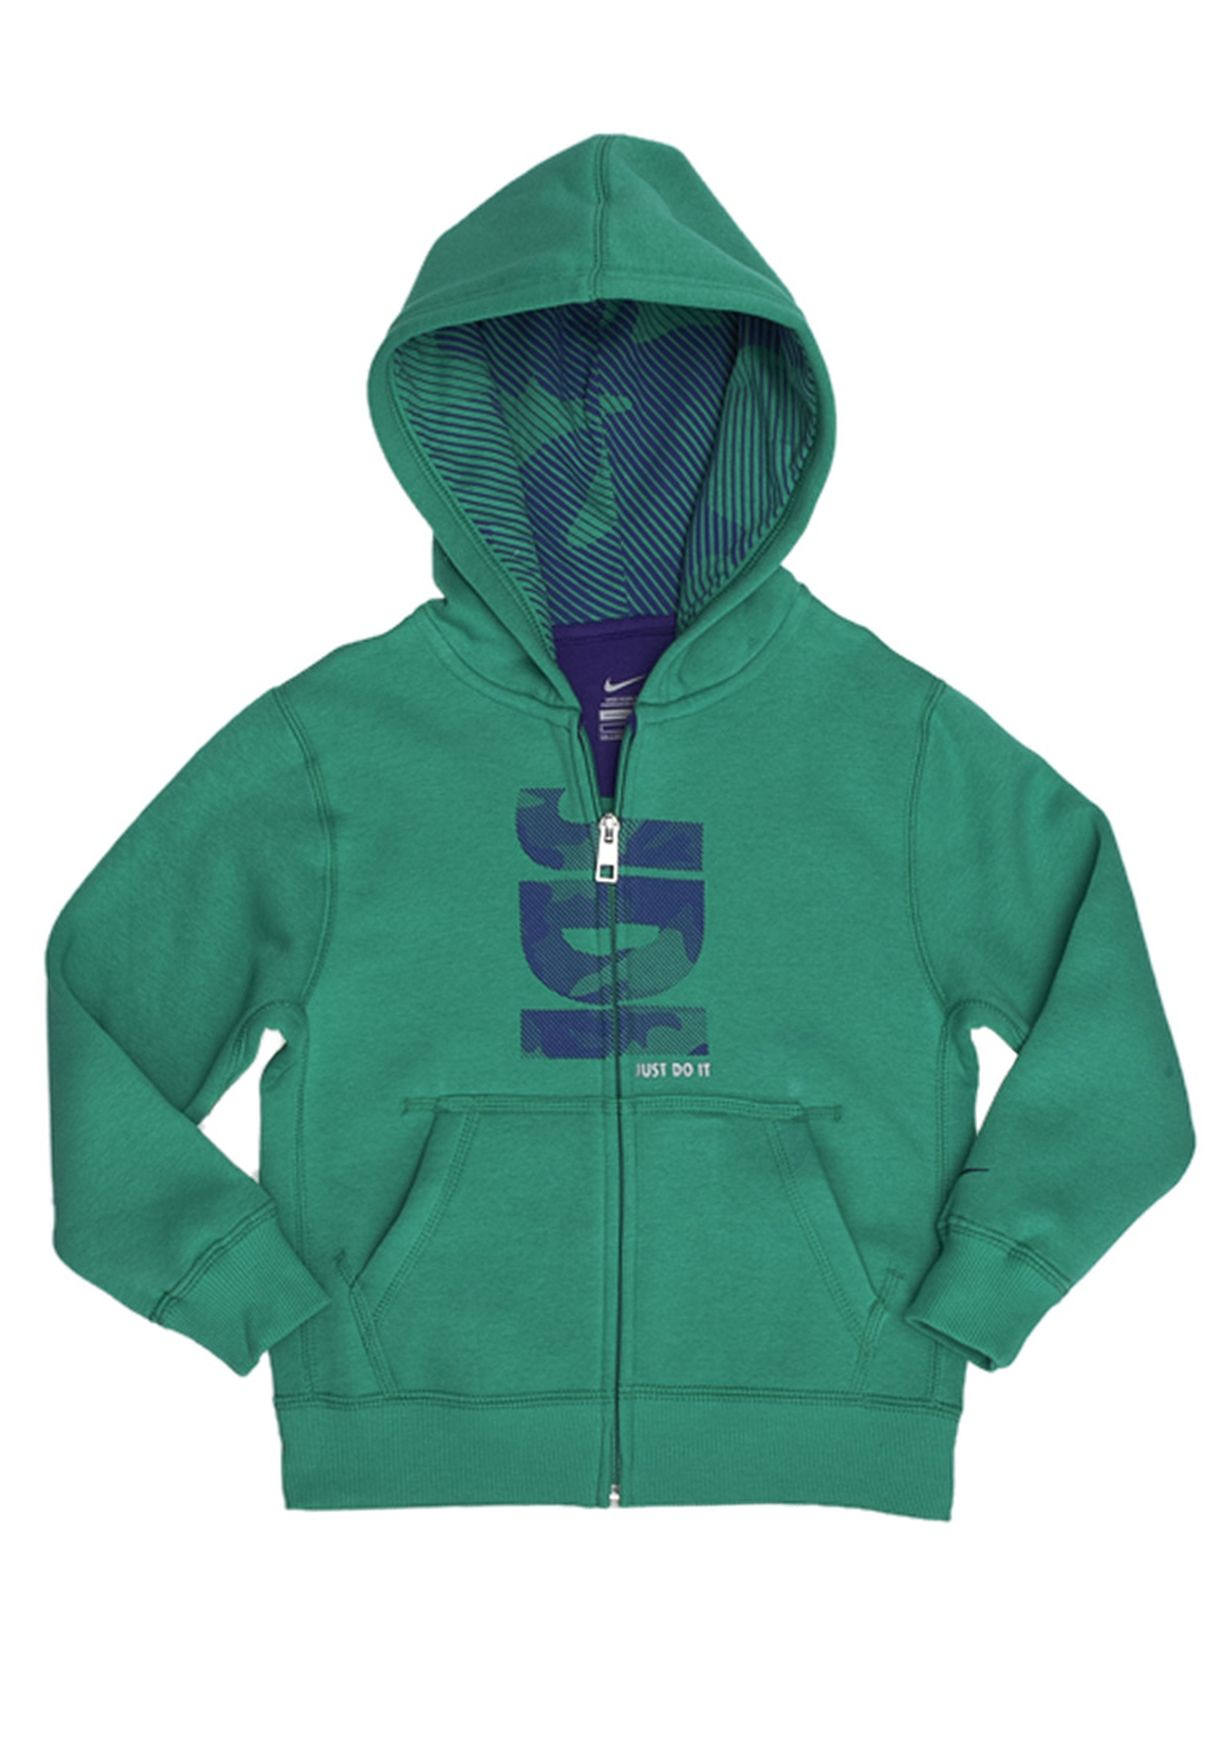 new product c3a8e 5c1d0 Shop Nike green Long Sleeve Sweatjackets NKAP506713-344 for Kids in Kuwait  - NI727AT83NKQ